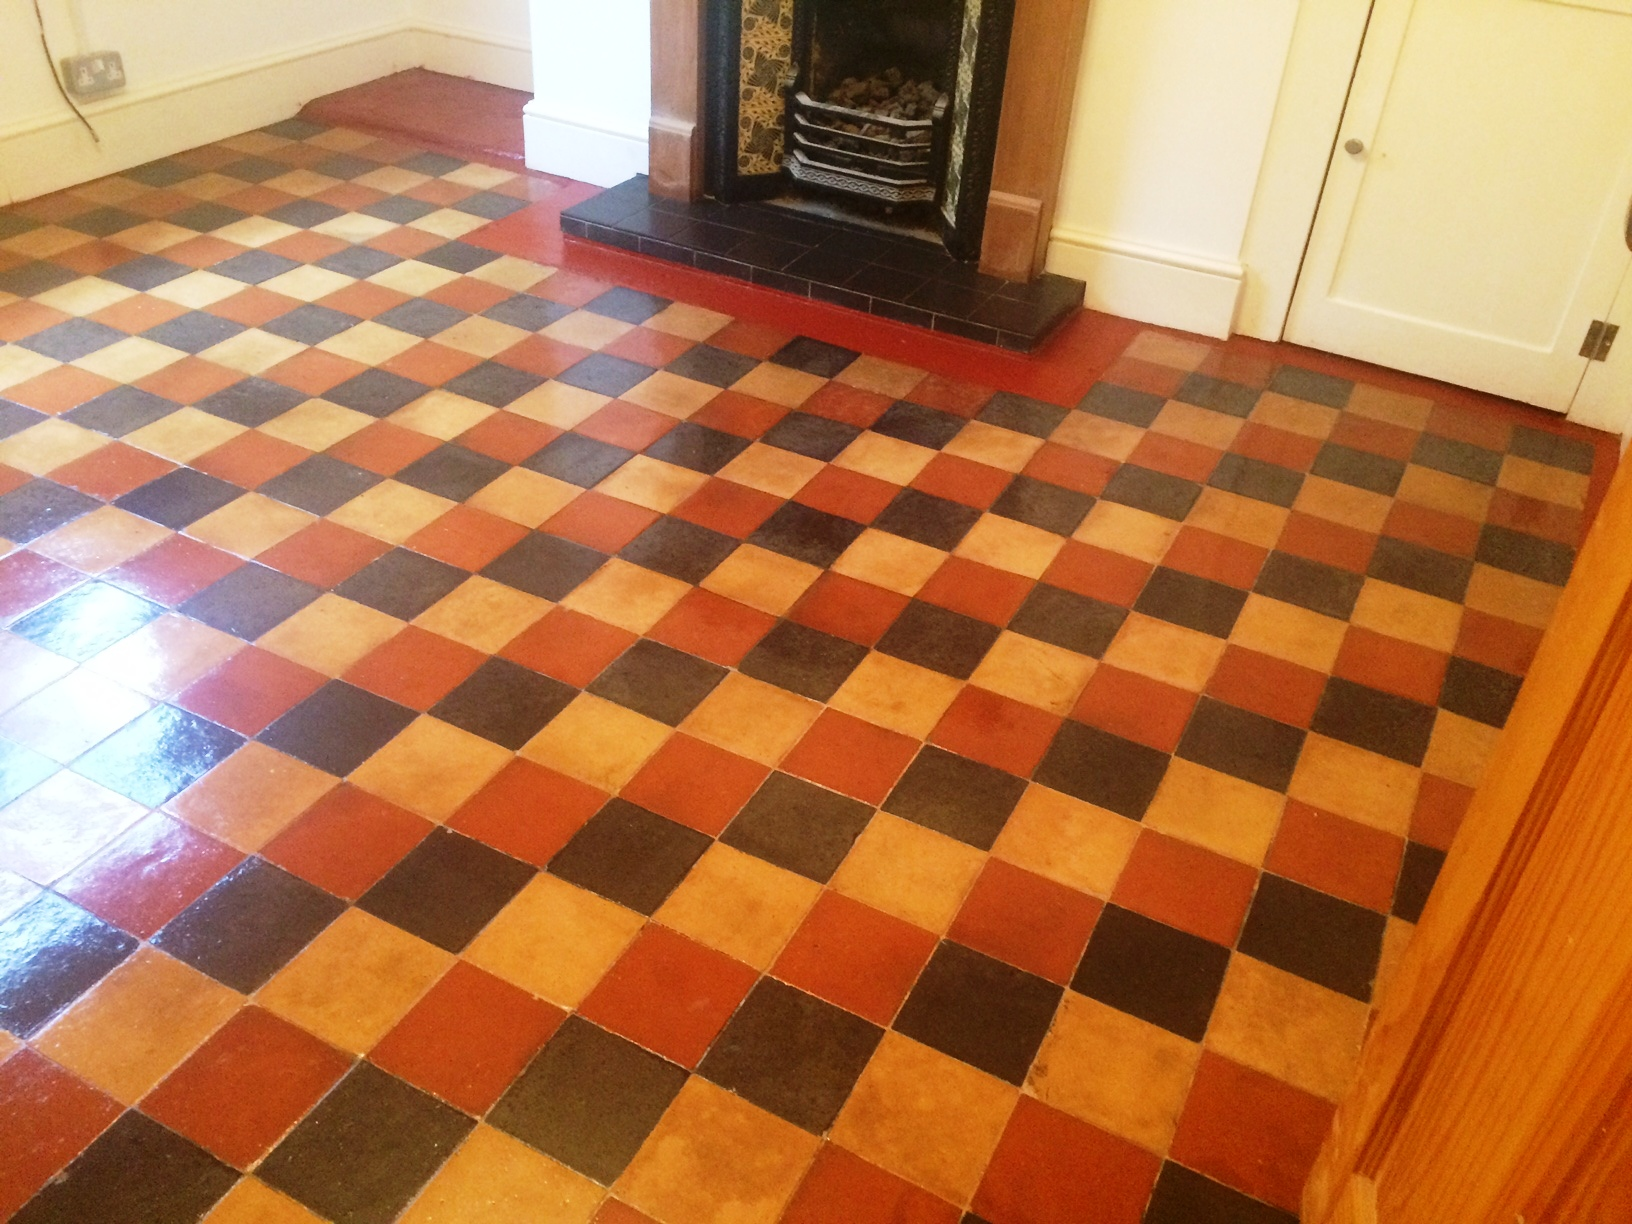 Cleaning and maintenance advice for victorian tiled floors removing carpet imprint from victorian floor tiles in yorkshire doublecrazyfo Gallery